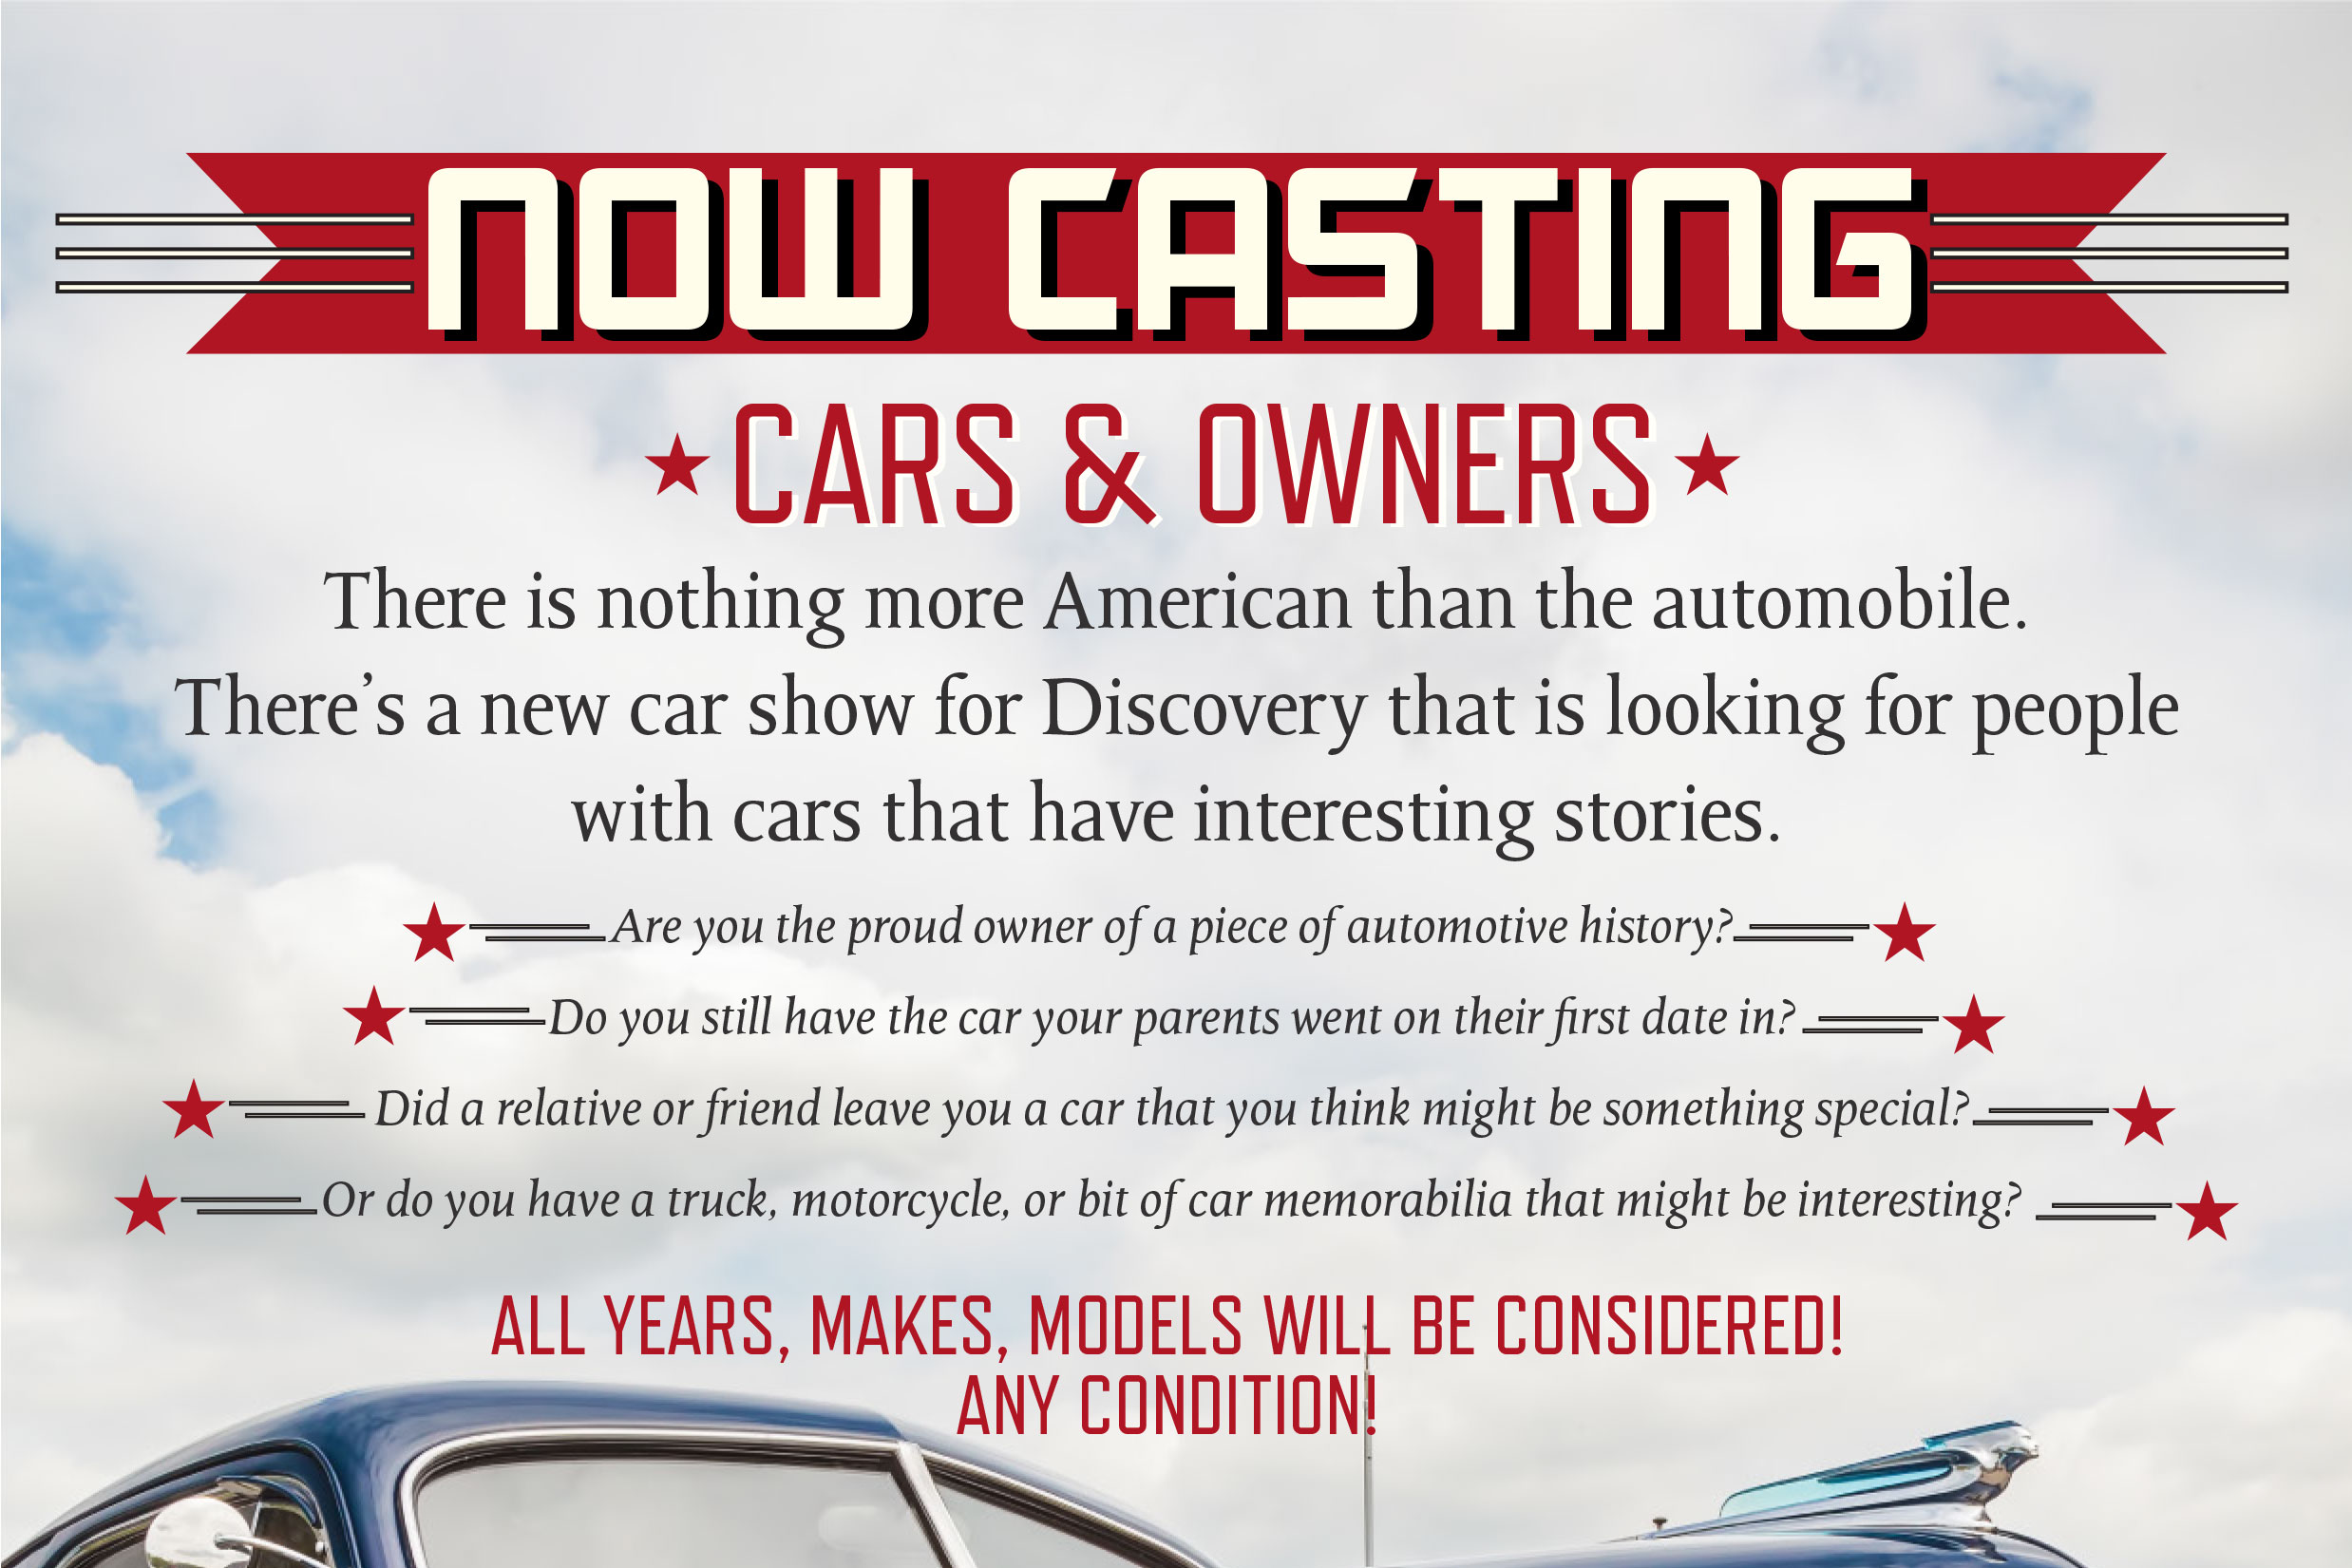 Discovery Wants Your Car And The Story Behind It. Apply Now To Be On TV And Get A Free Trip!